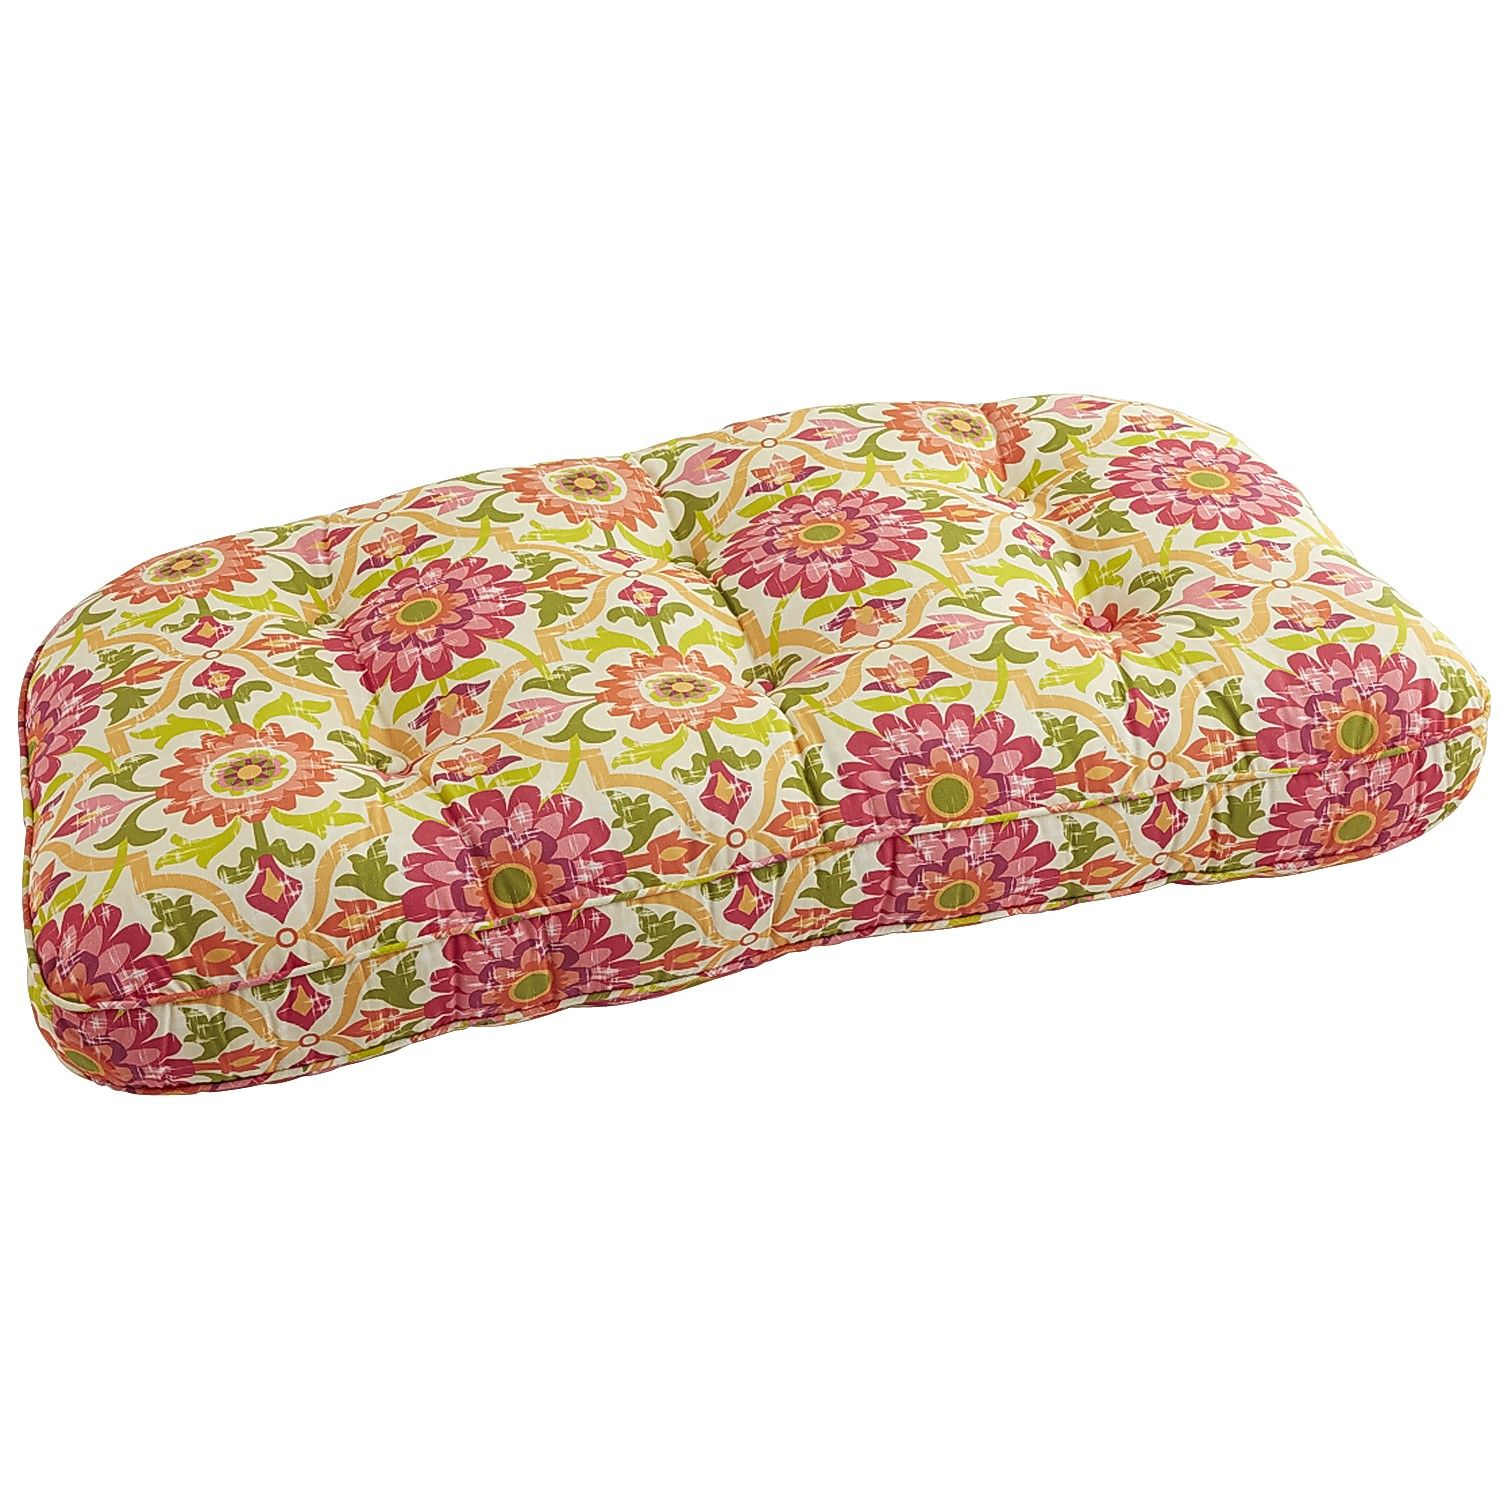 Pink Mariposa Deluxe Settee Cushion Polyester Outdoor Home